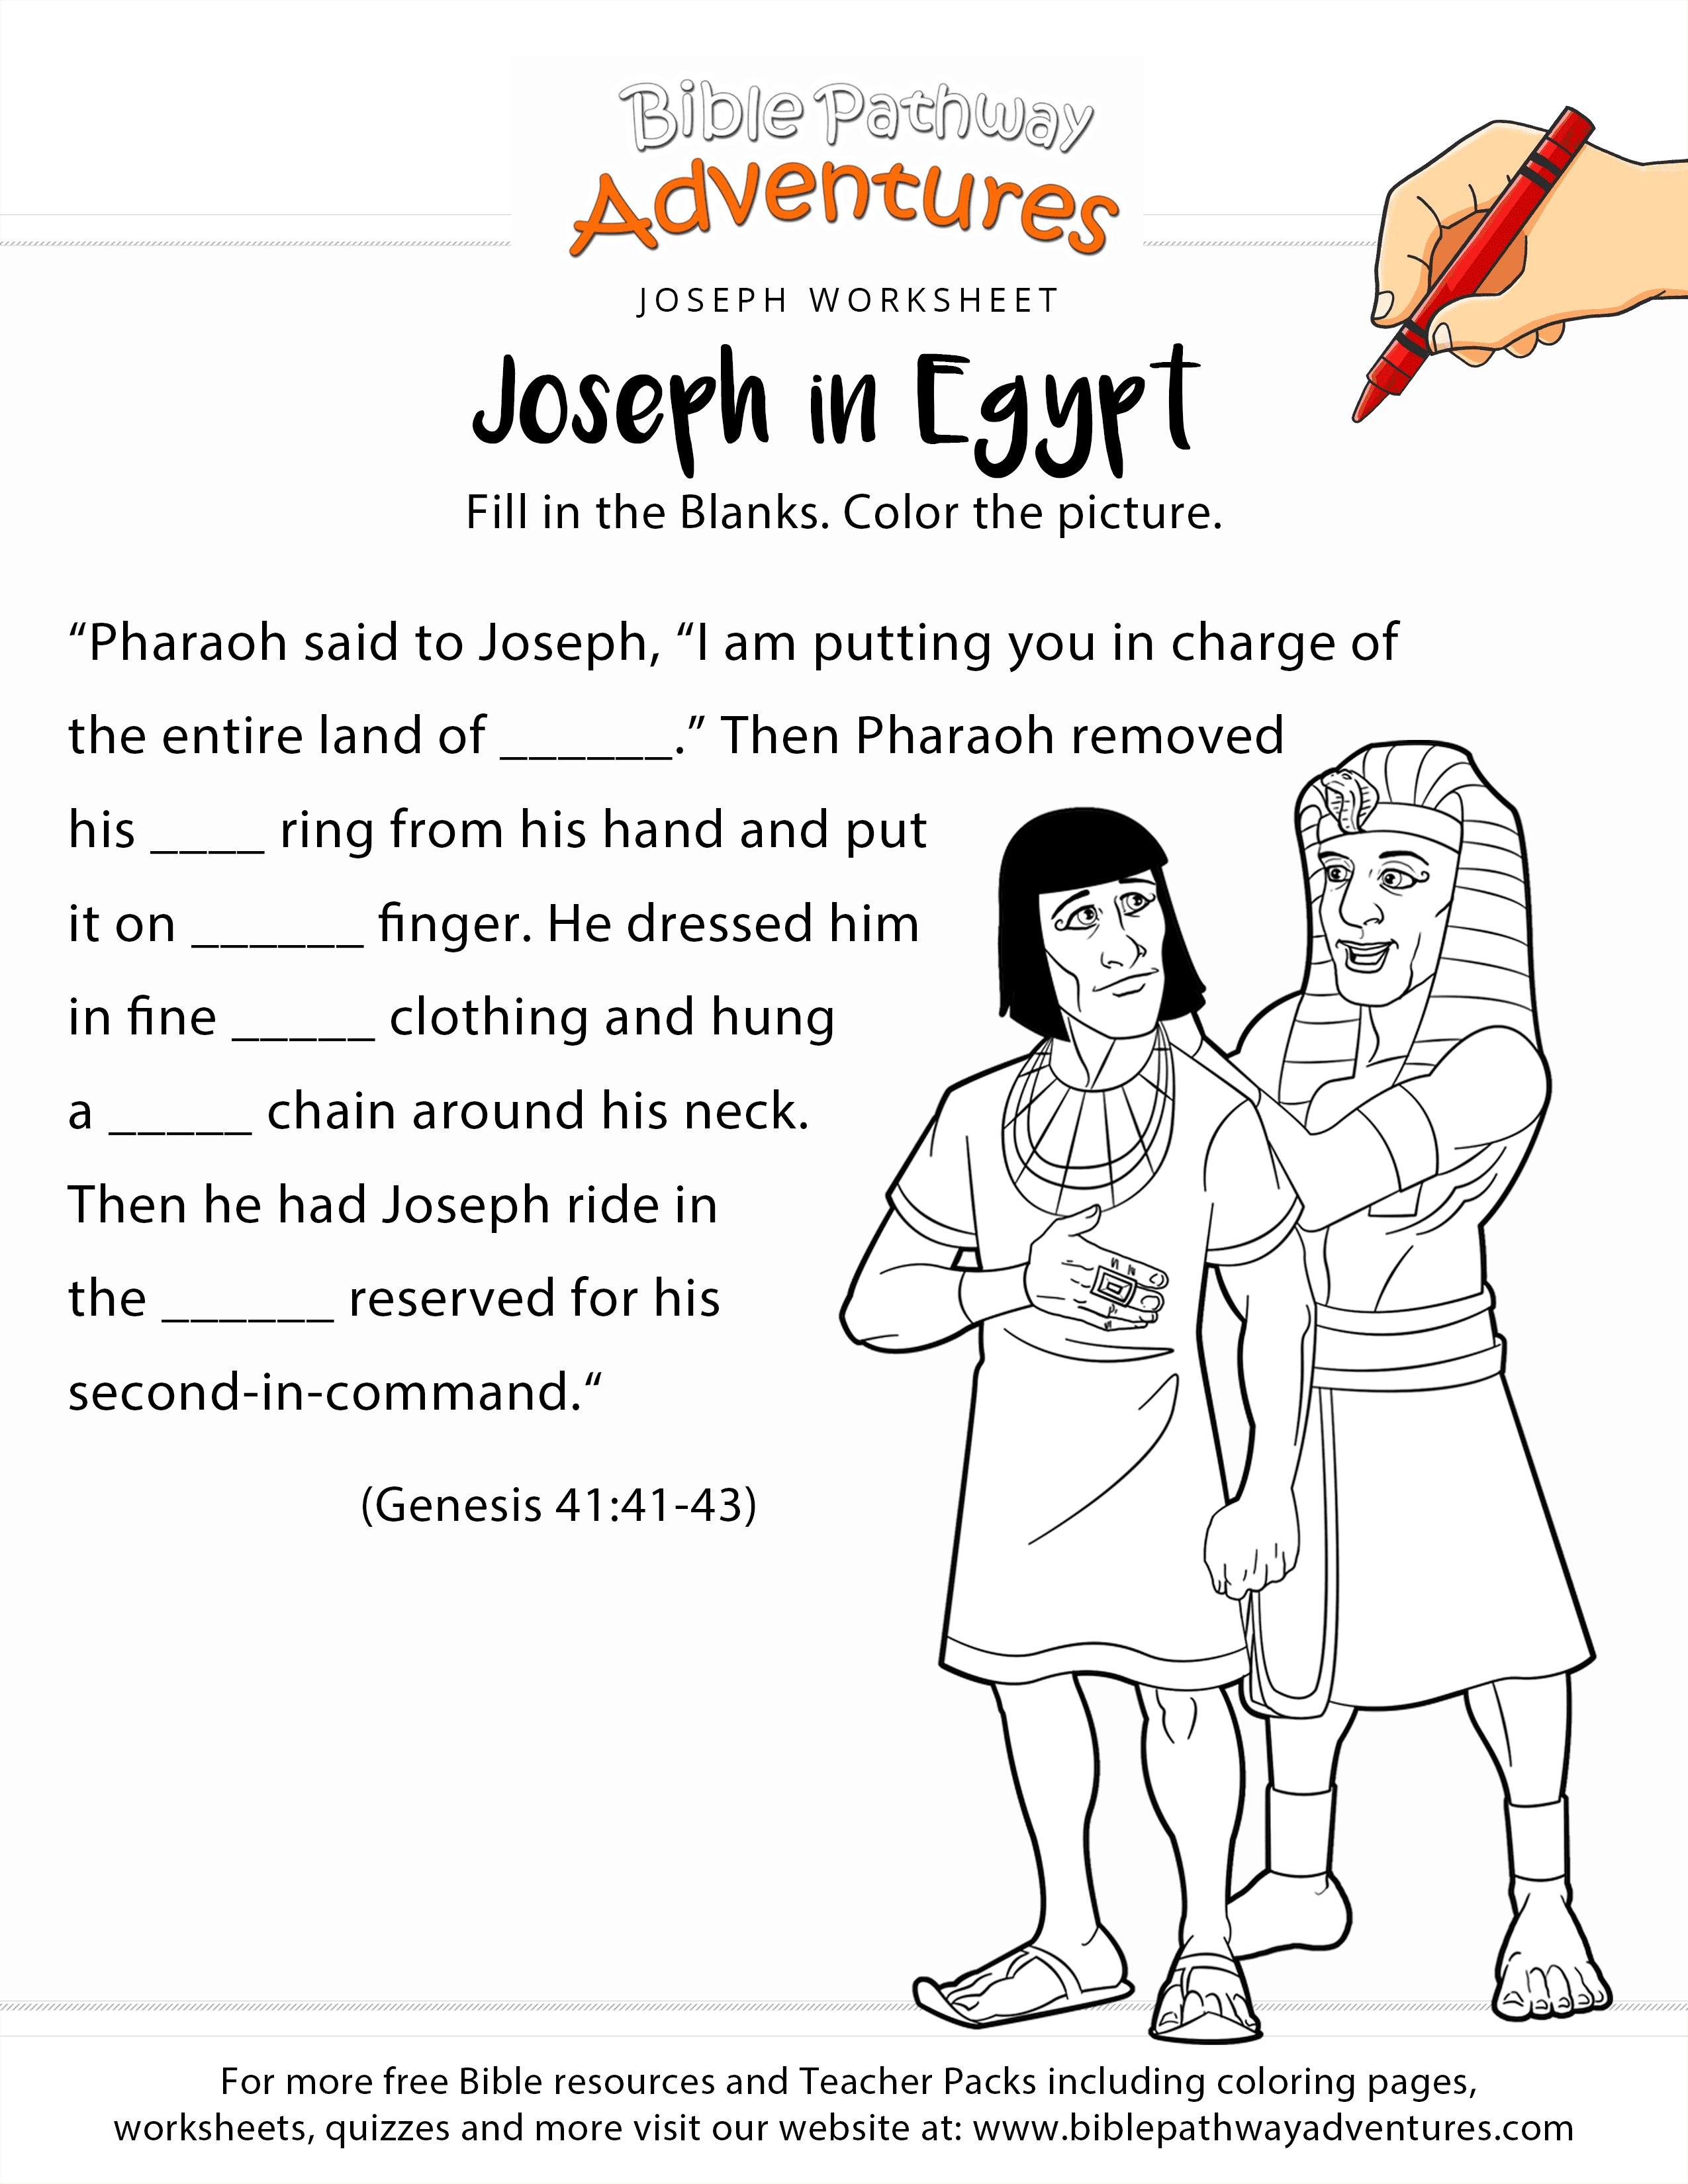 Joseph in Egypt worksheet and coloring